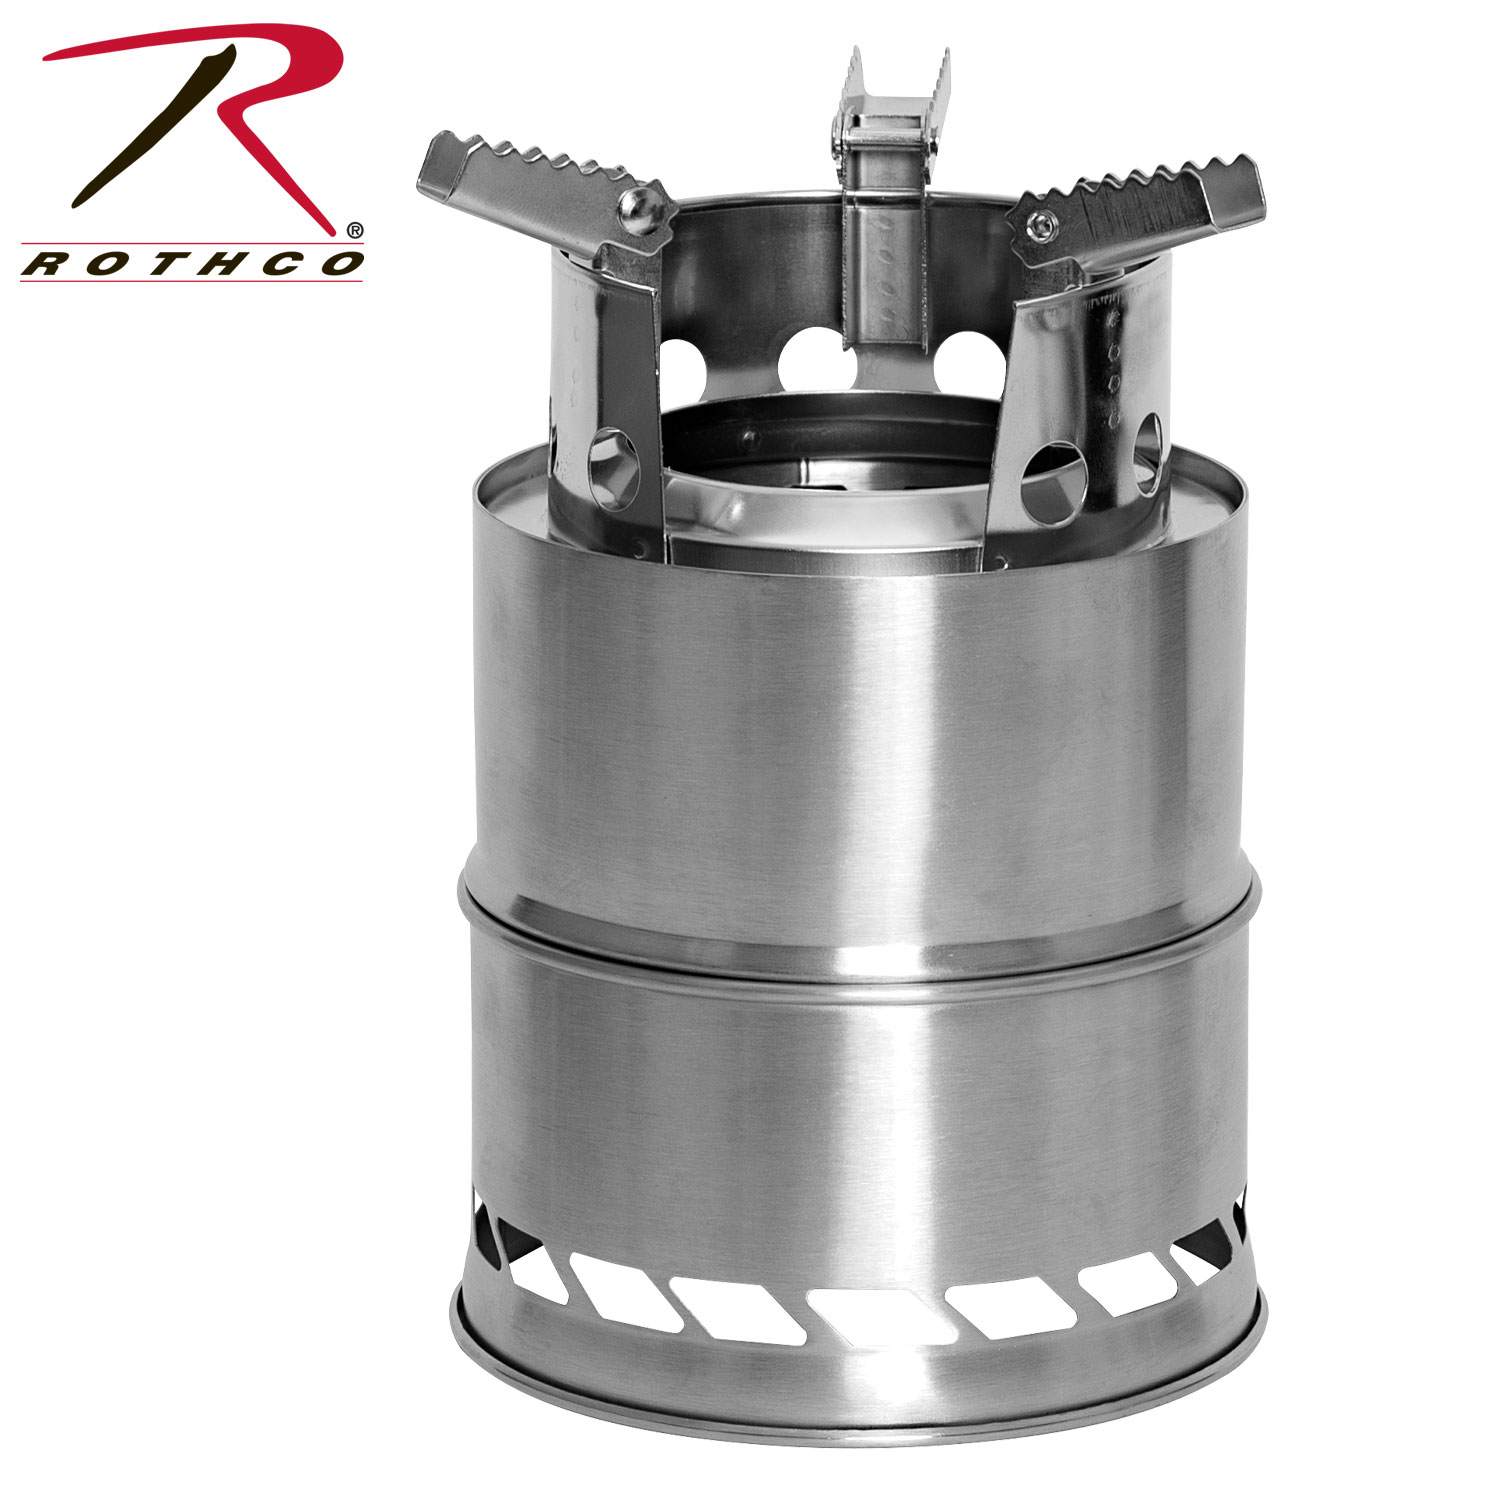 Compact Stainless Steel Emergency Camping Stove by Rothco